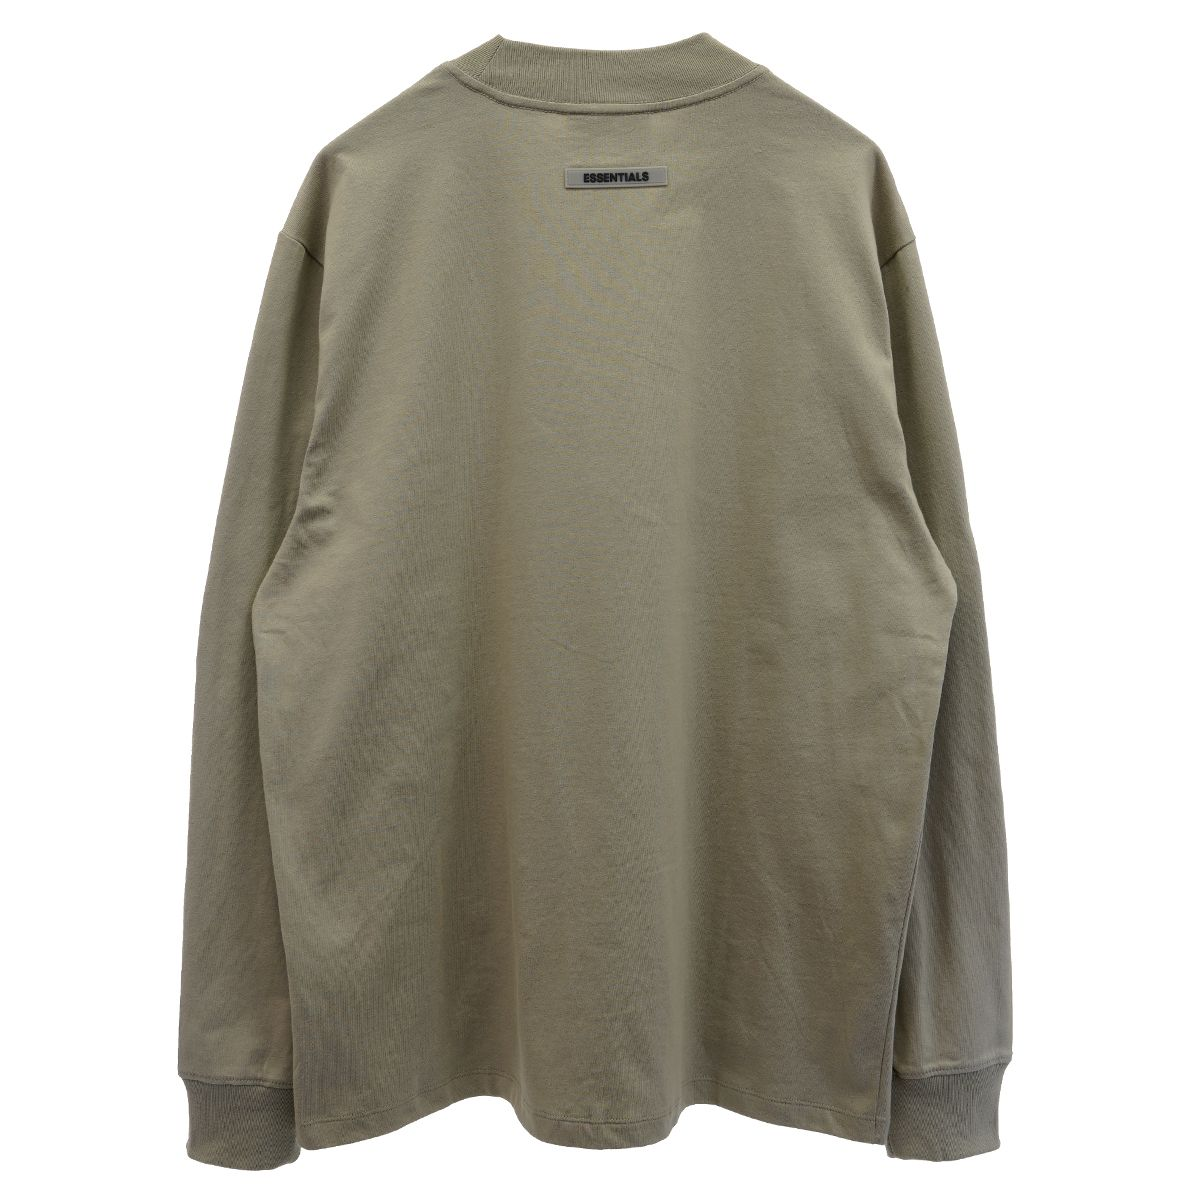 ESSENTIALS HO20 L/S TEE / 031 : OLIVE